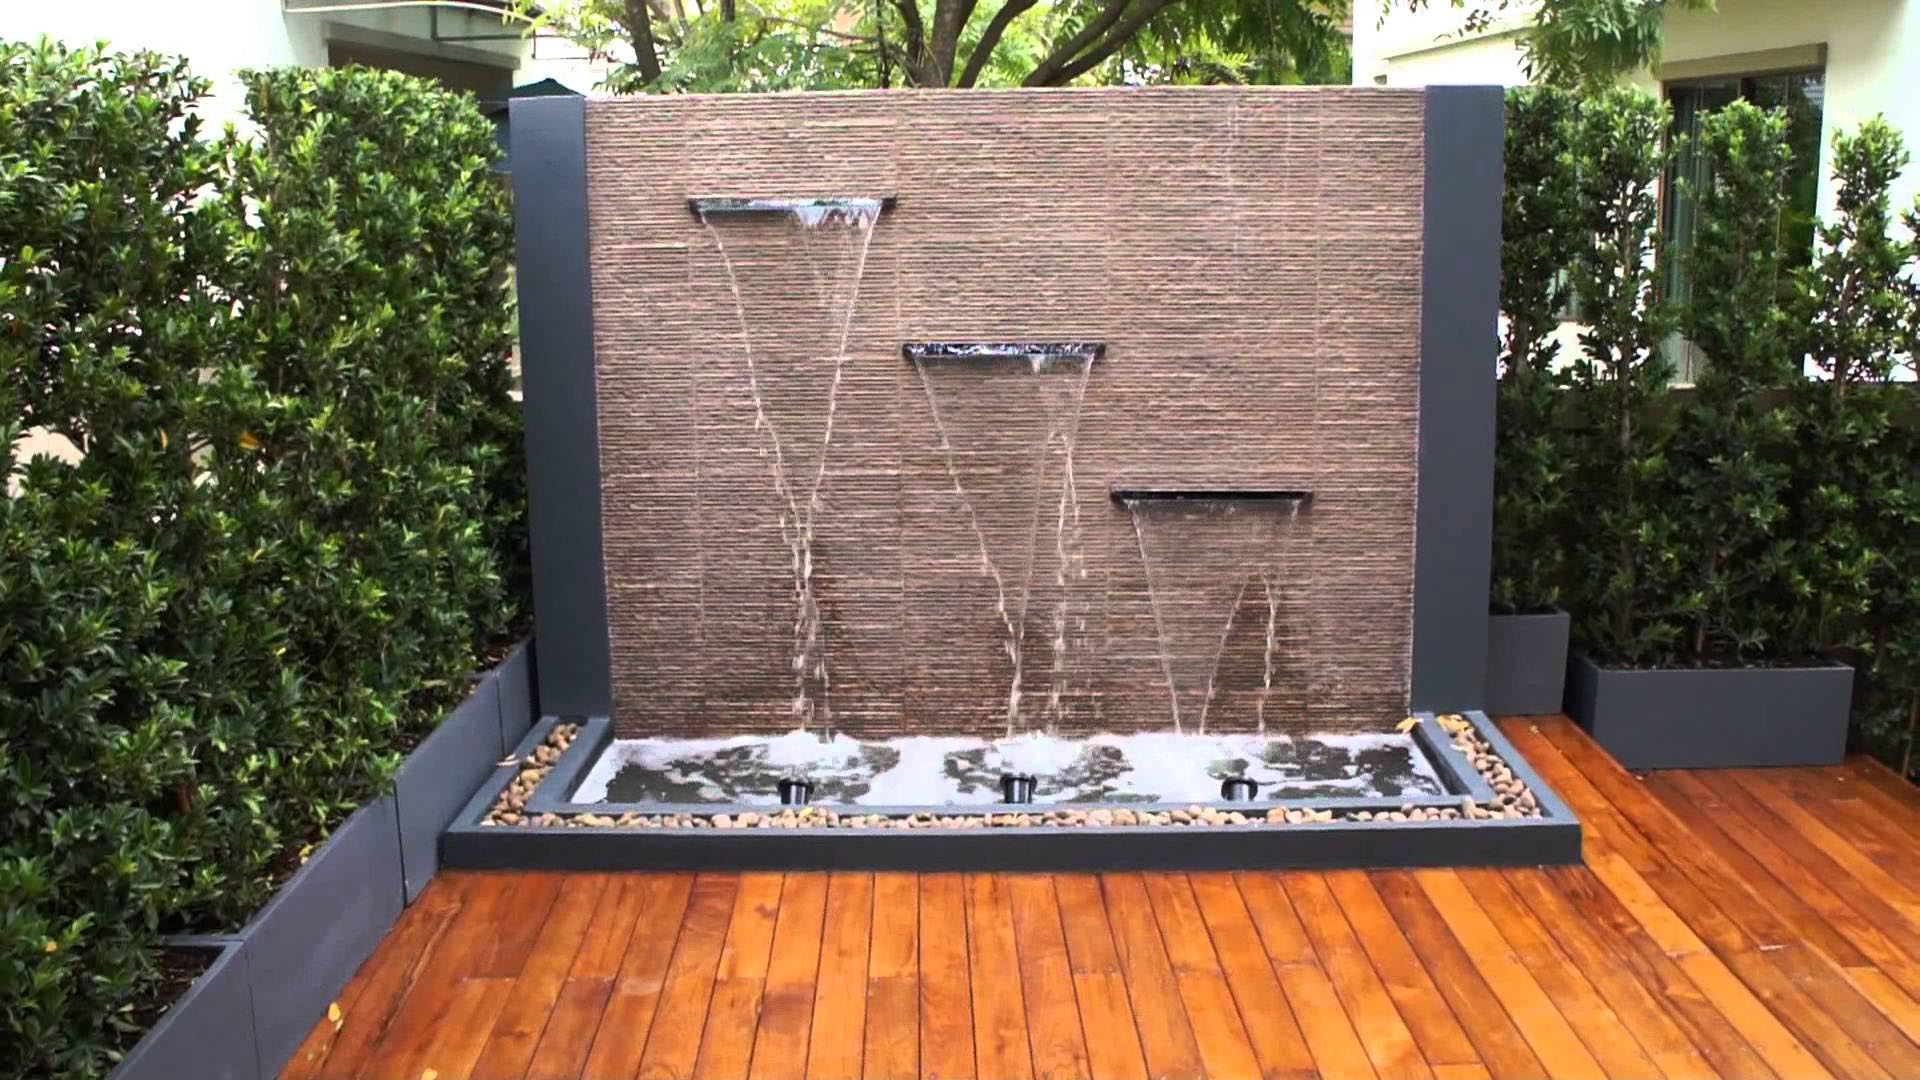 Diy water feature wall backyard design ideas Diy wall water feature